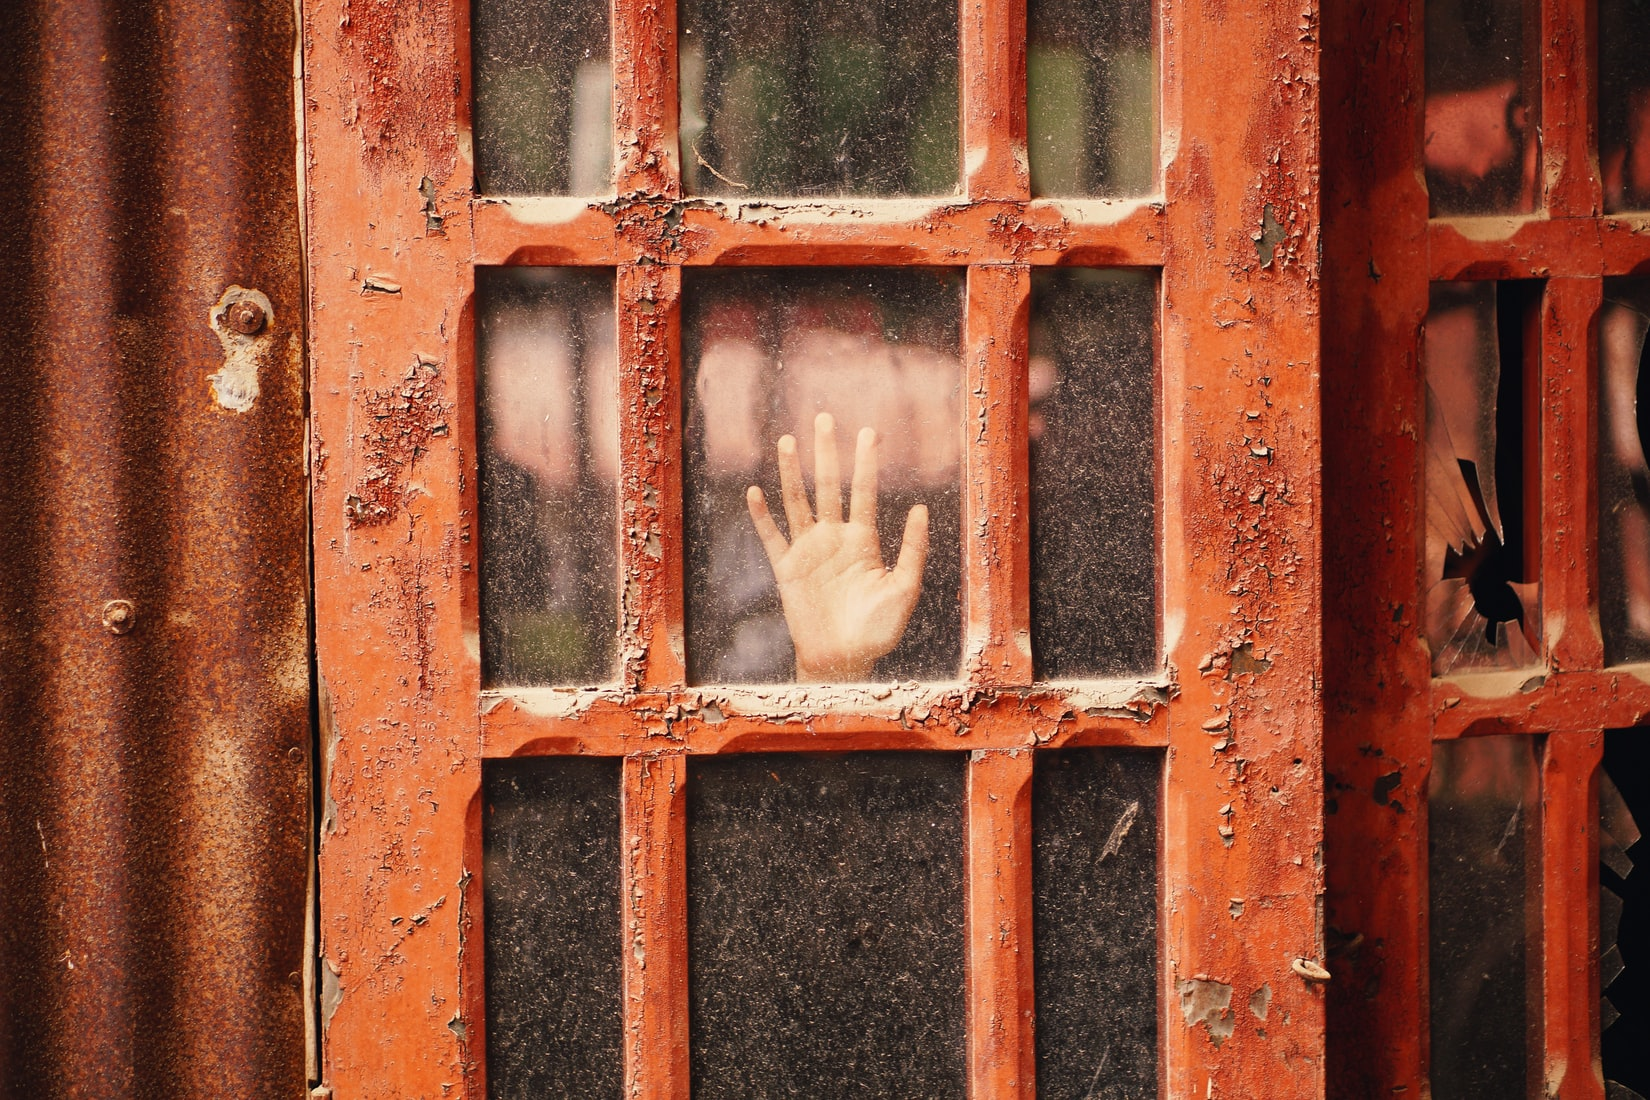 Scared person's hand on glass panel door with red wooden frame